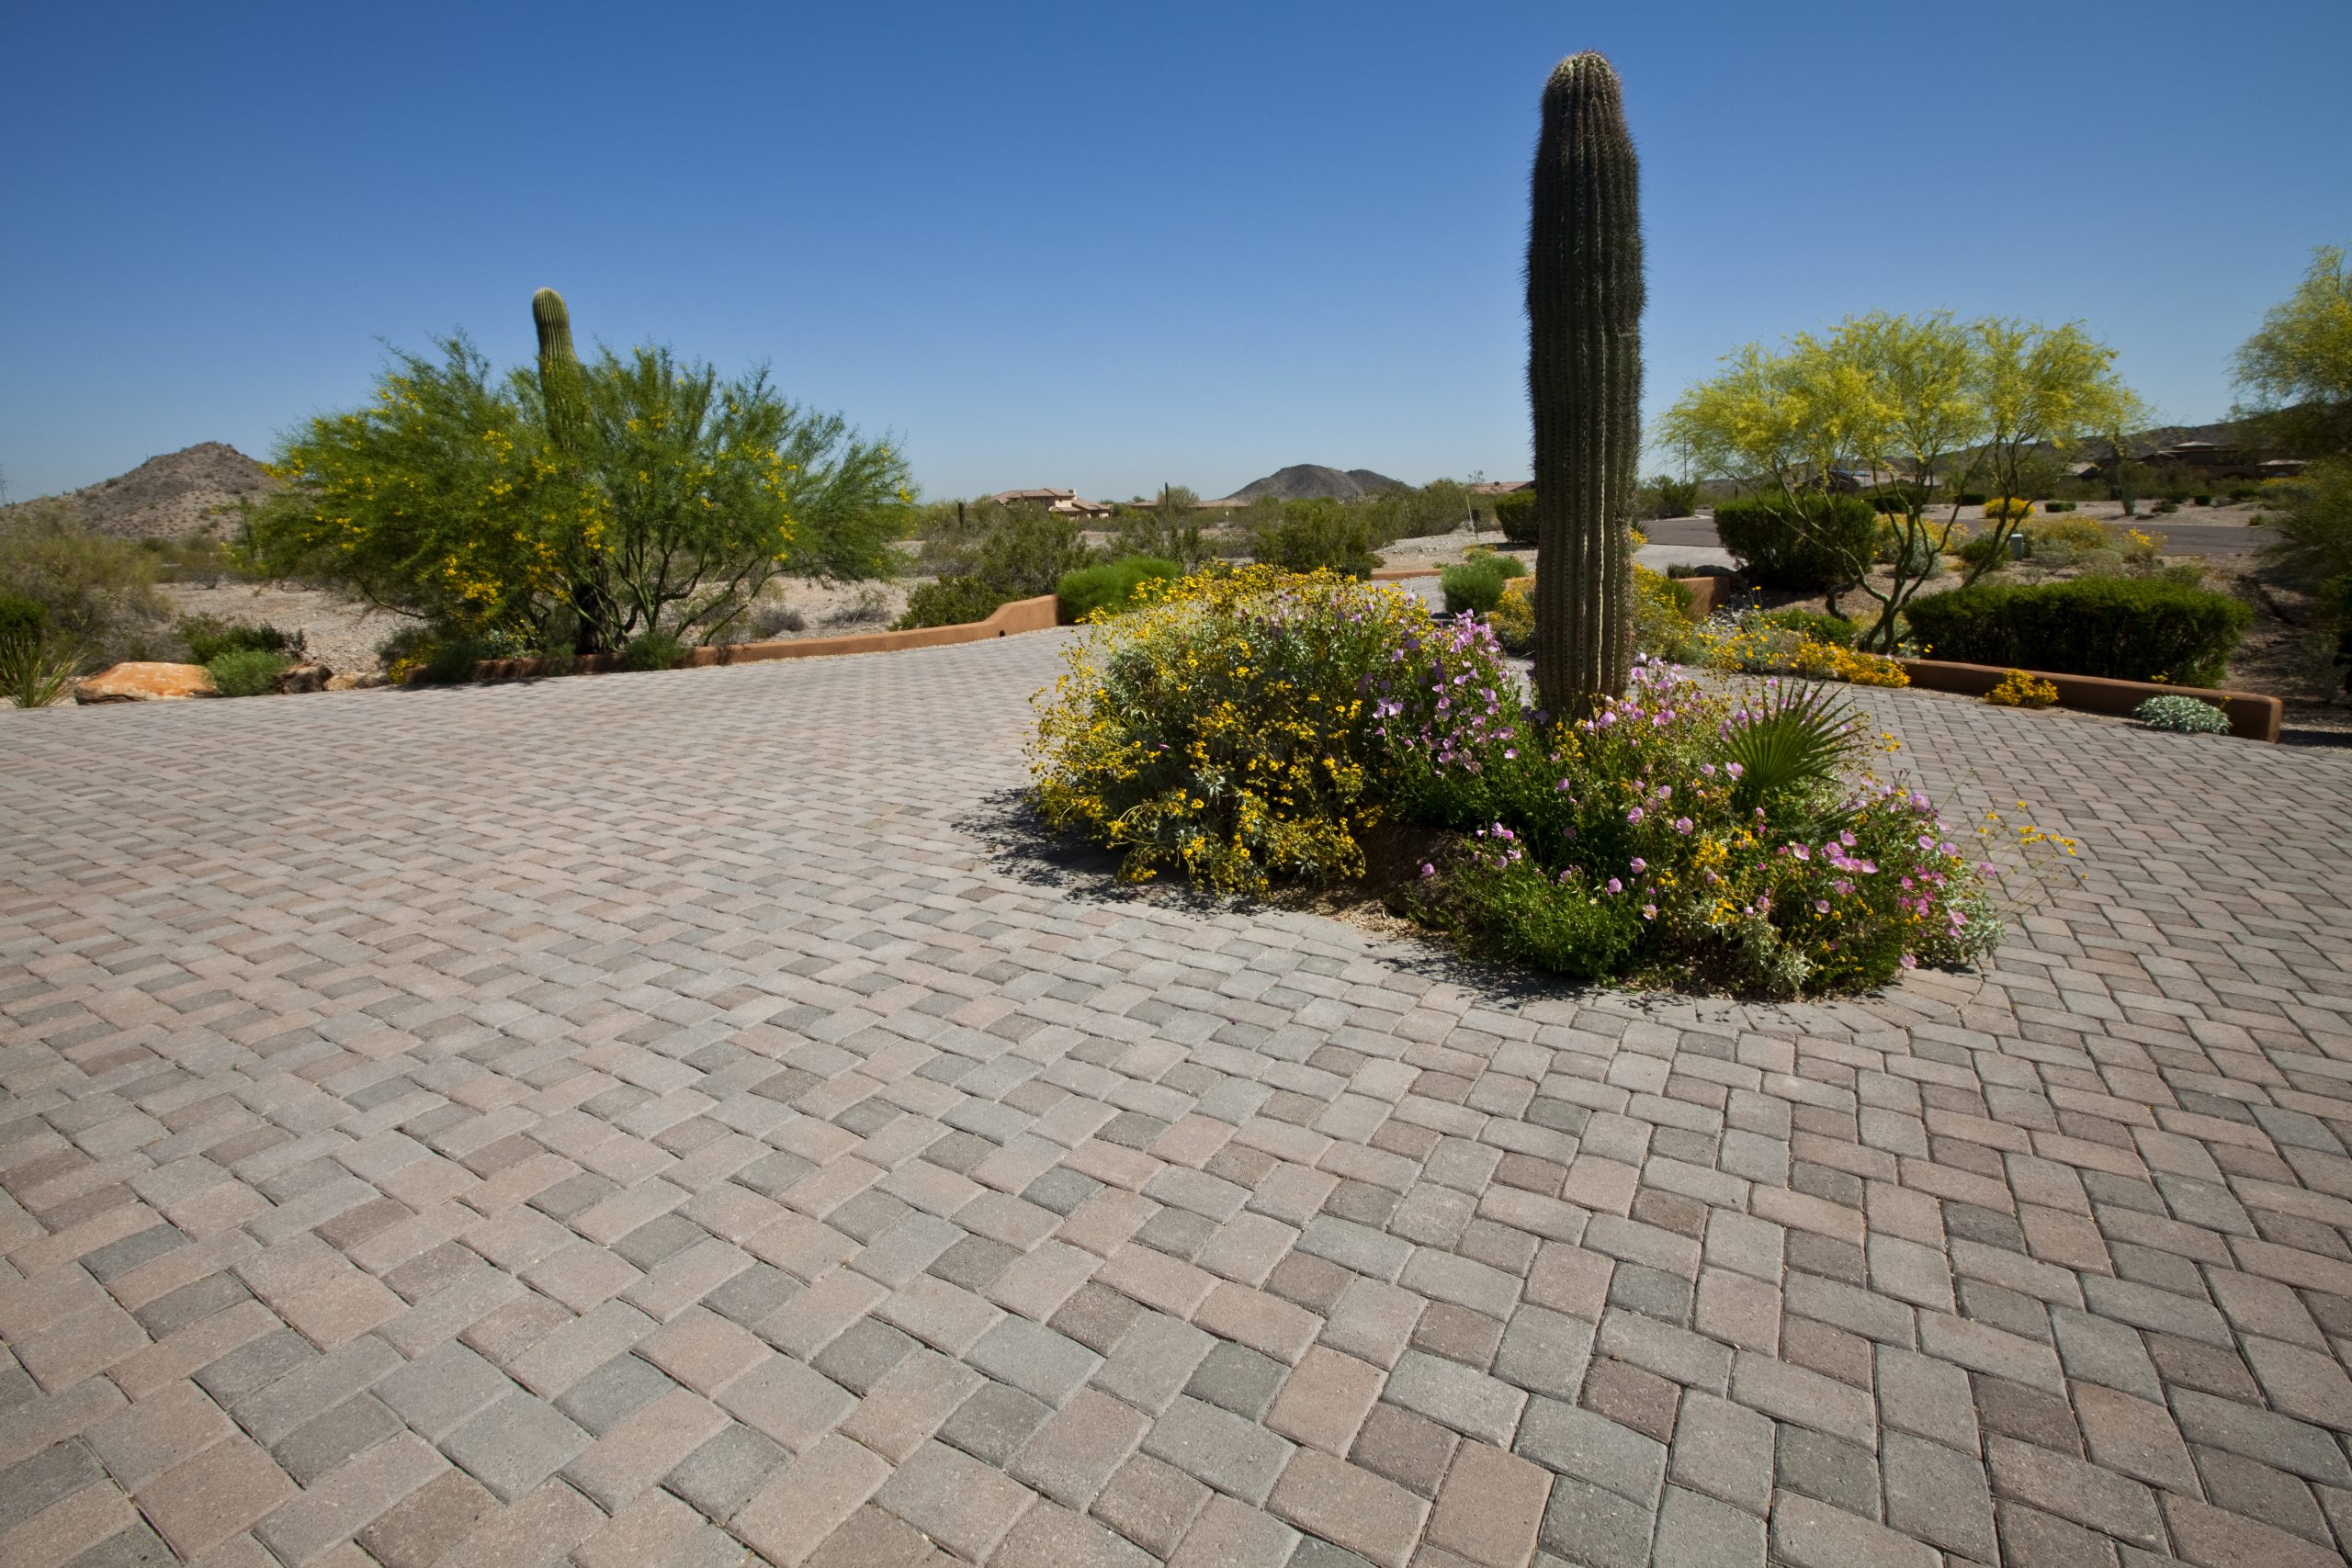 Paver Brick Driveway with Wild Flowers and Saguaro Cactus